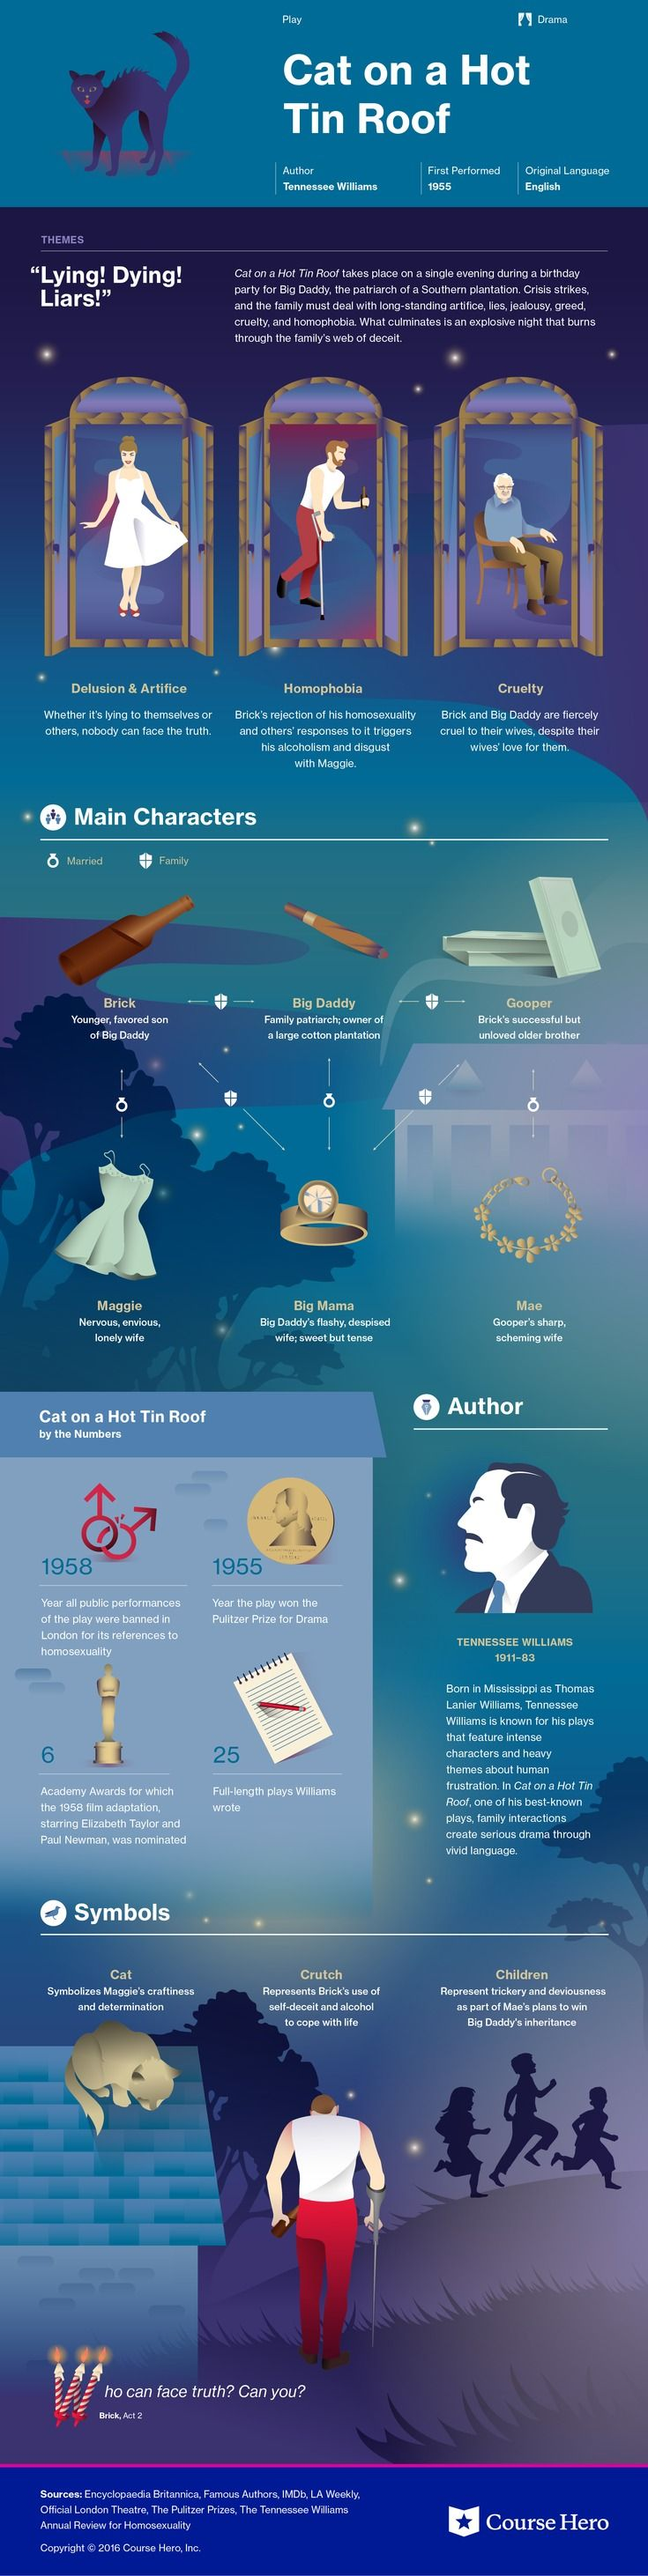 This @CourseHero infographic on Cat on a Hot Tin Roof is both visually stunning and informative!